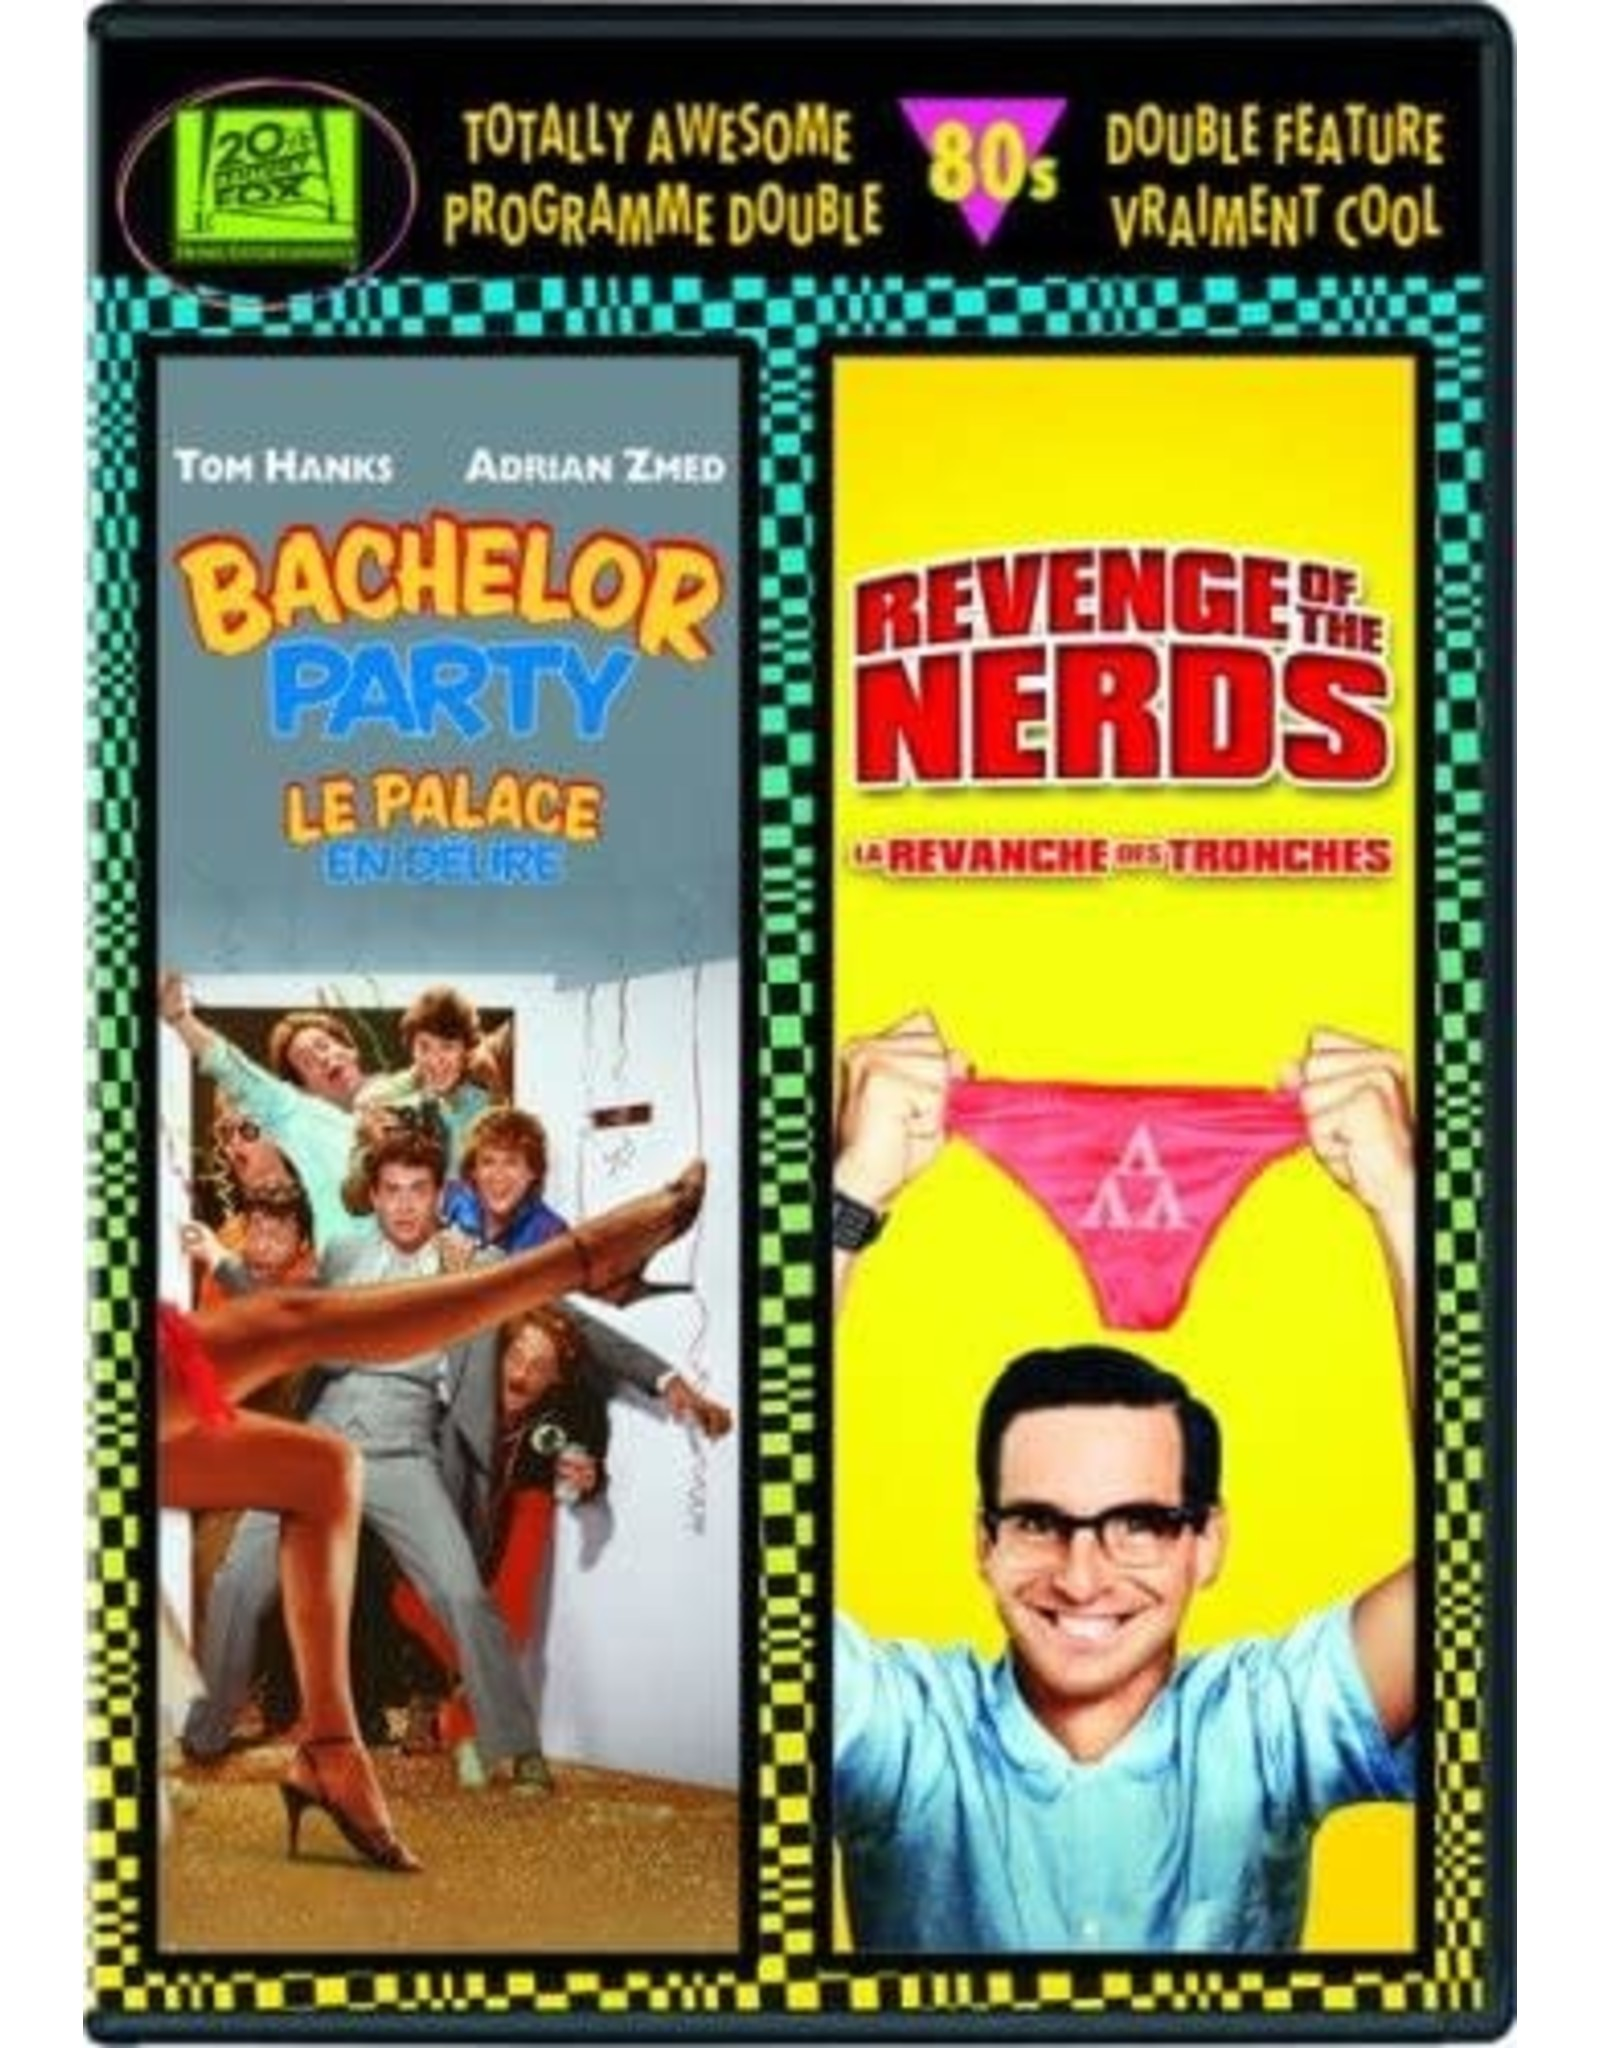 Cult and Cool Bachelor Party / Revenge of the Nerds Double Feature